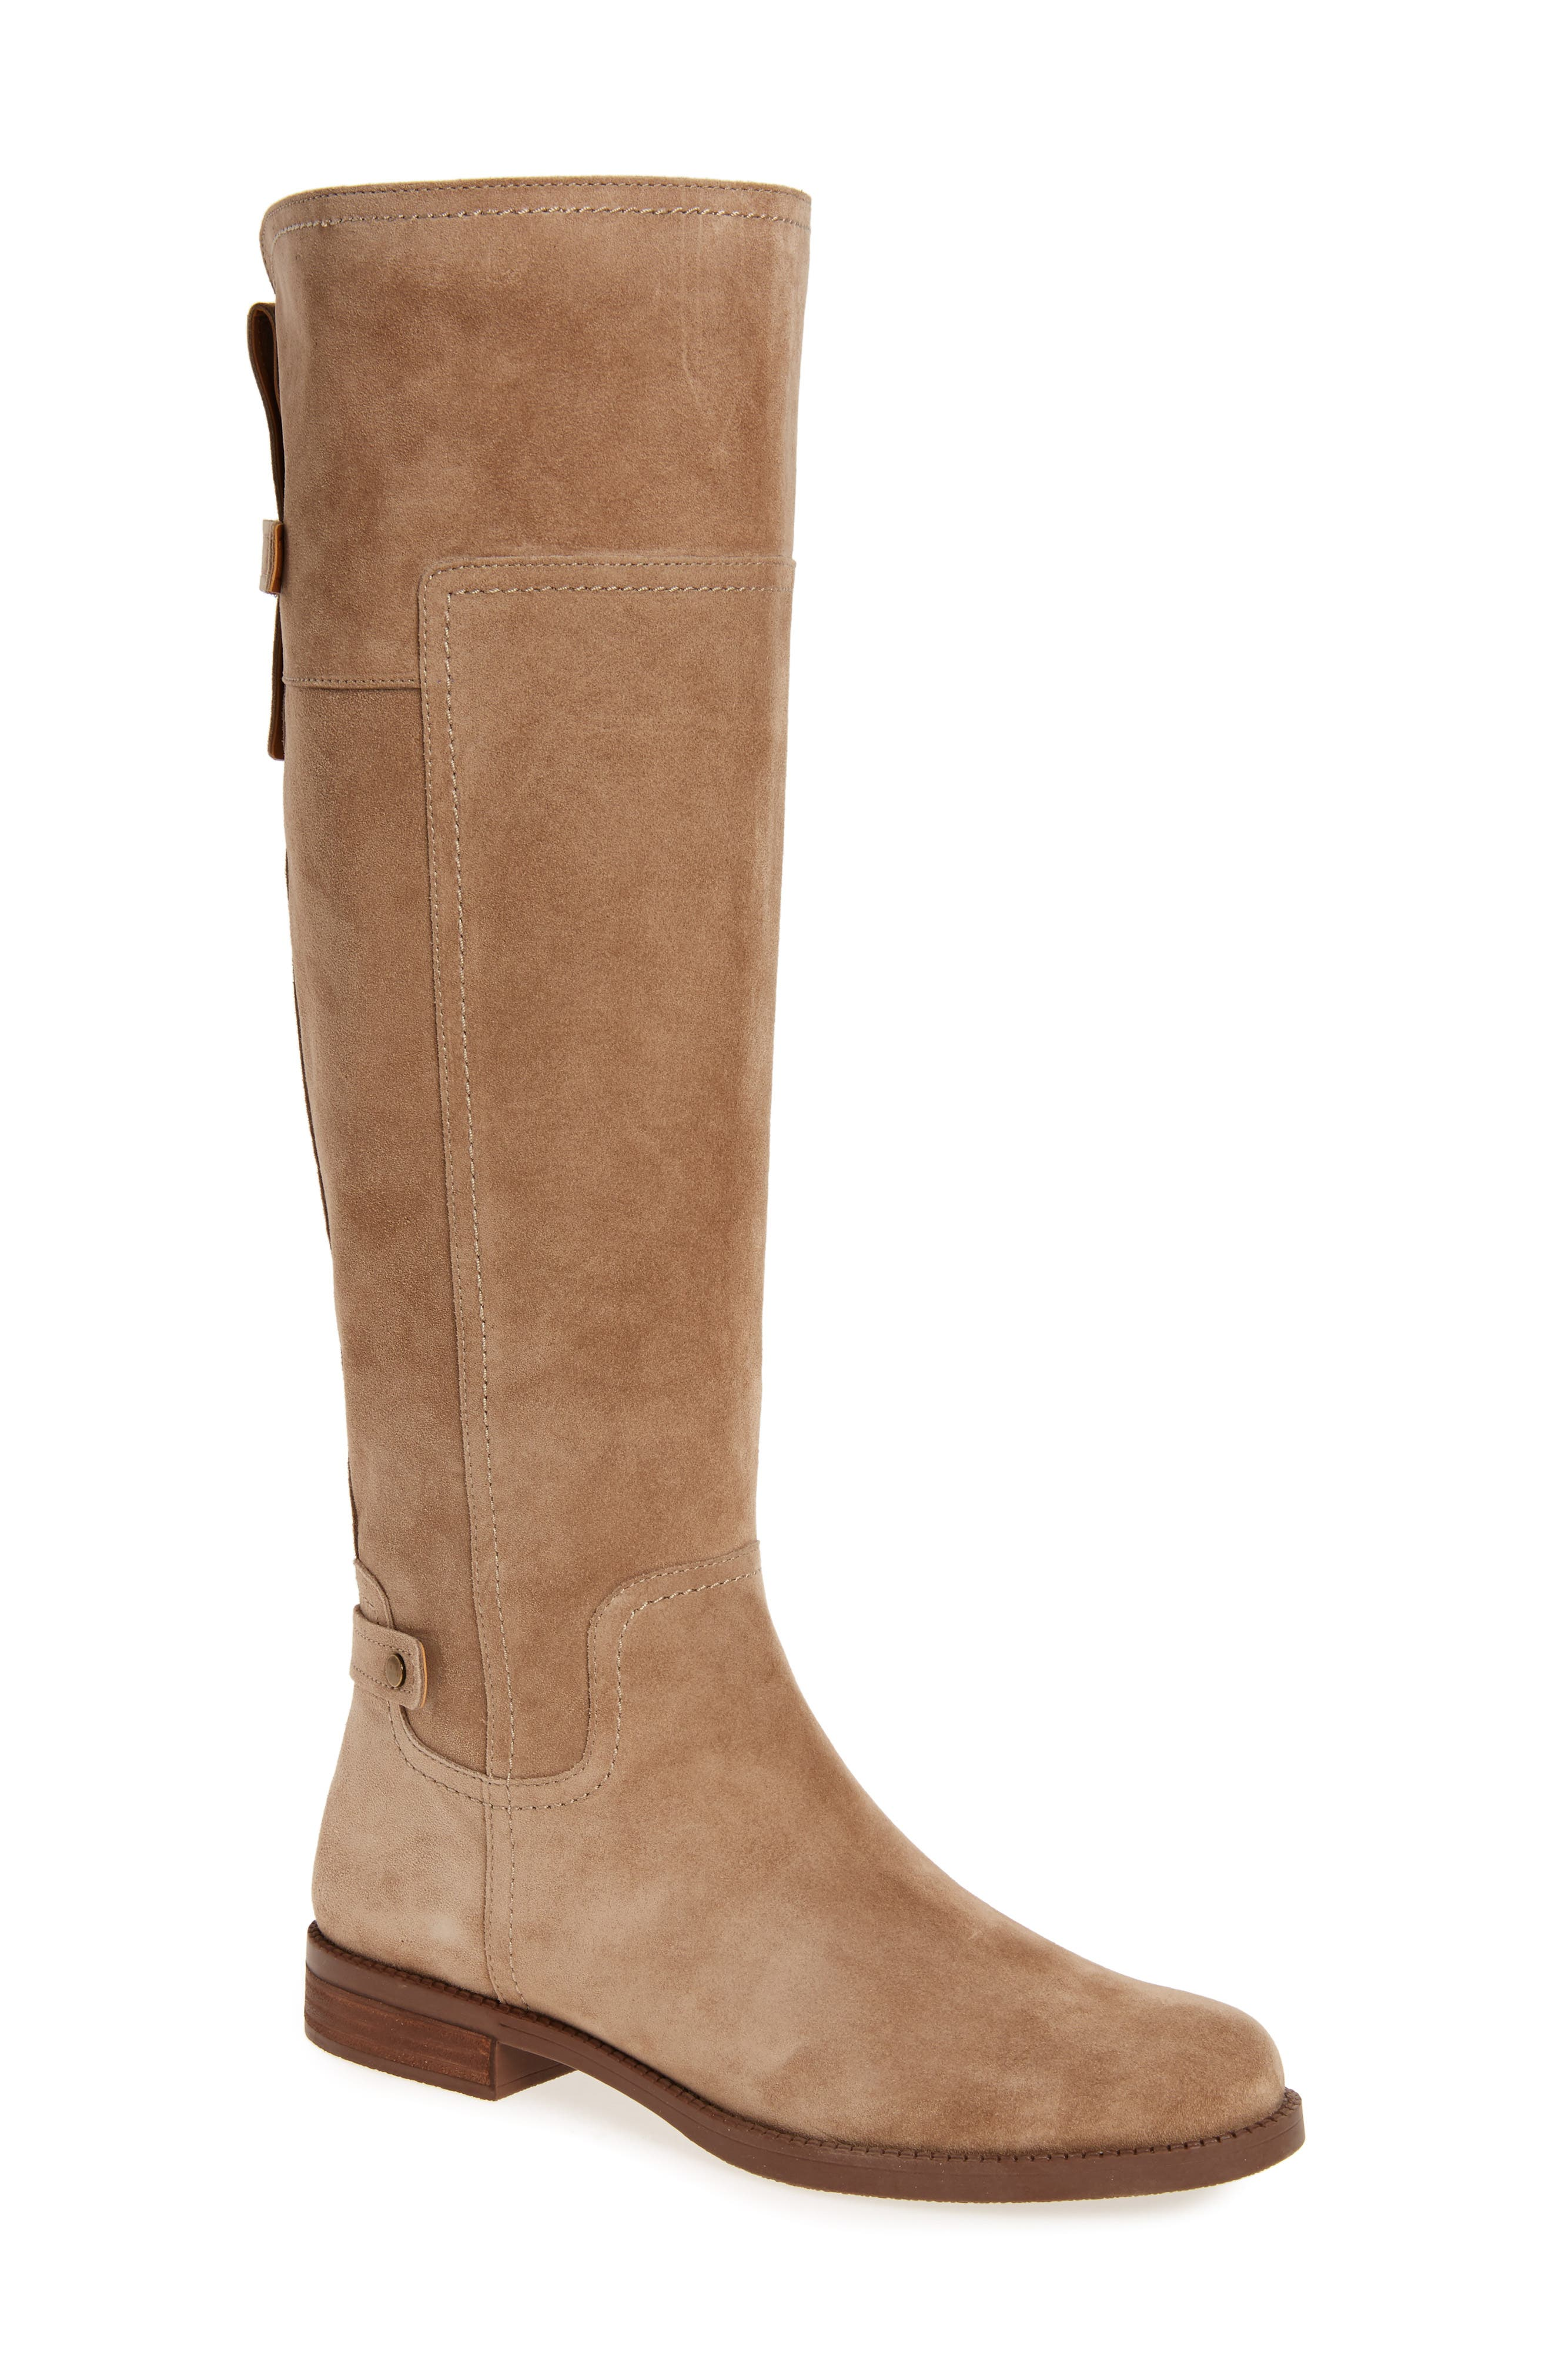 Main Image - SARTO by Franco Sarto Coley Boot (Women) (Regular & Wide Calf)